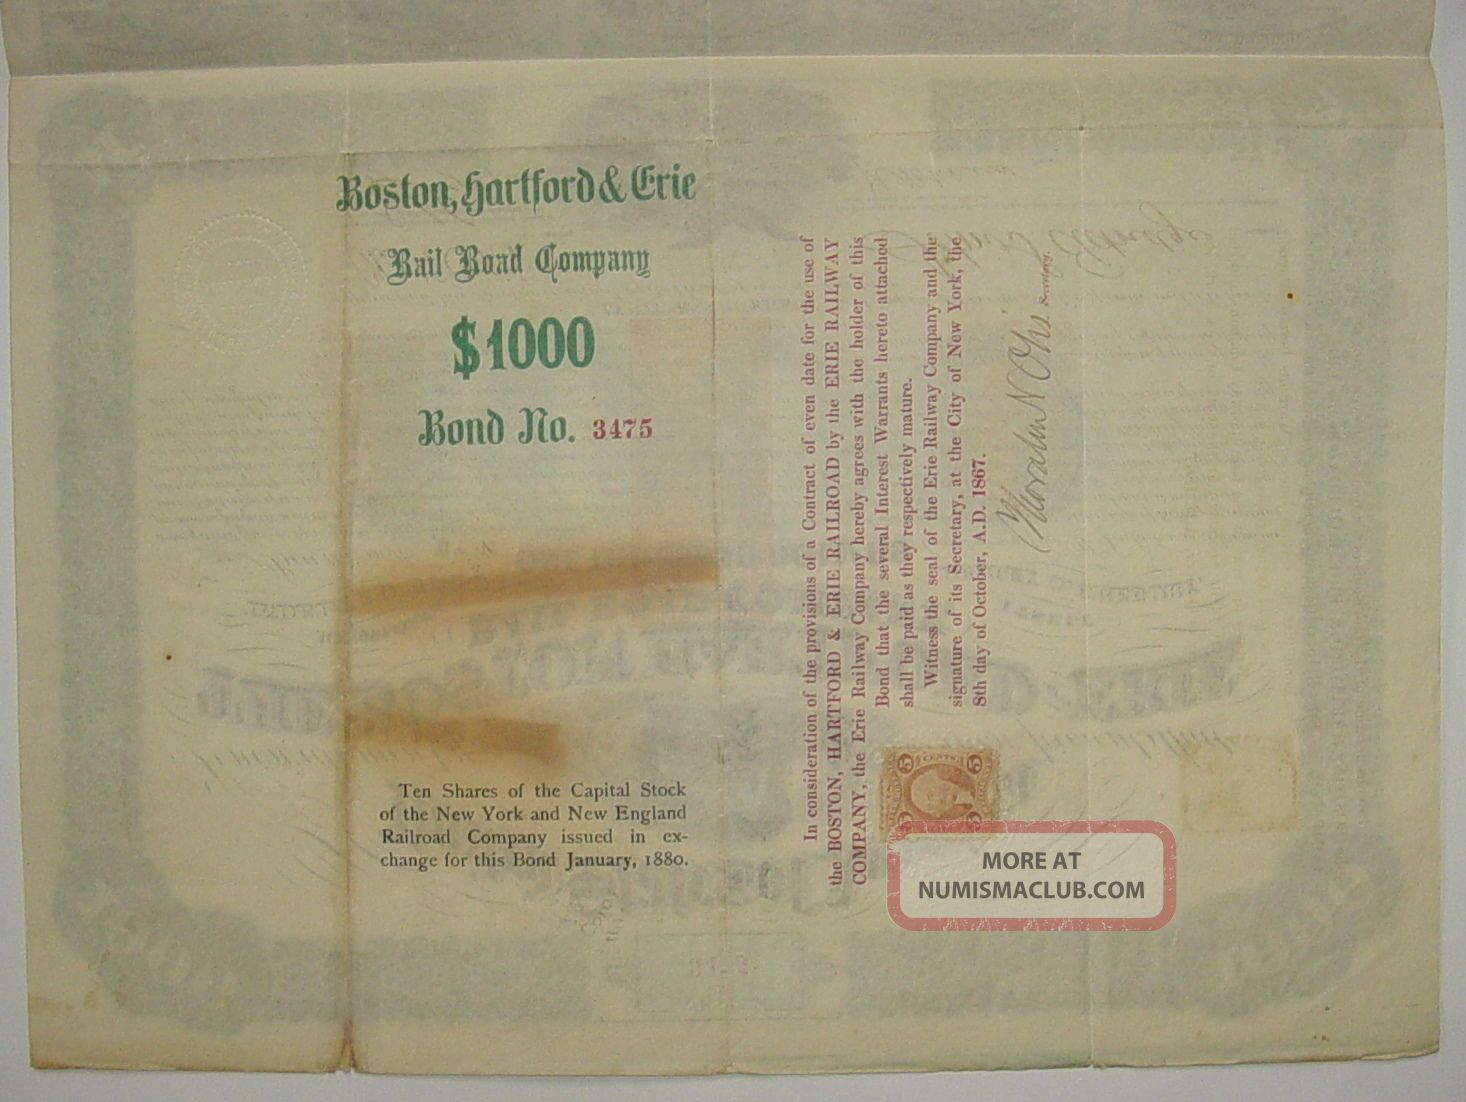 1867 Boston Hartford & Erie Railroad Company Bond Stock Certificate 61 Coupons Transportation photo